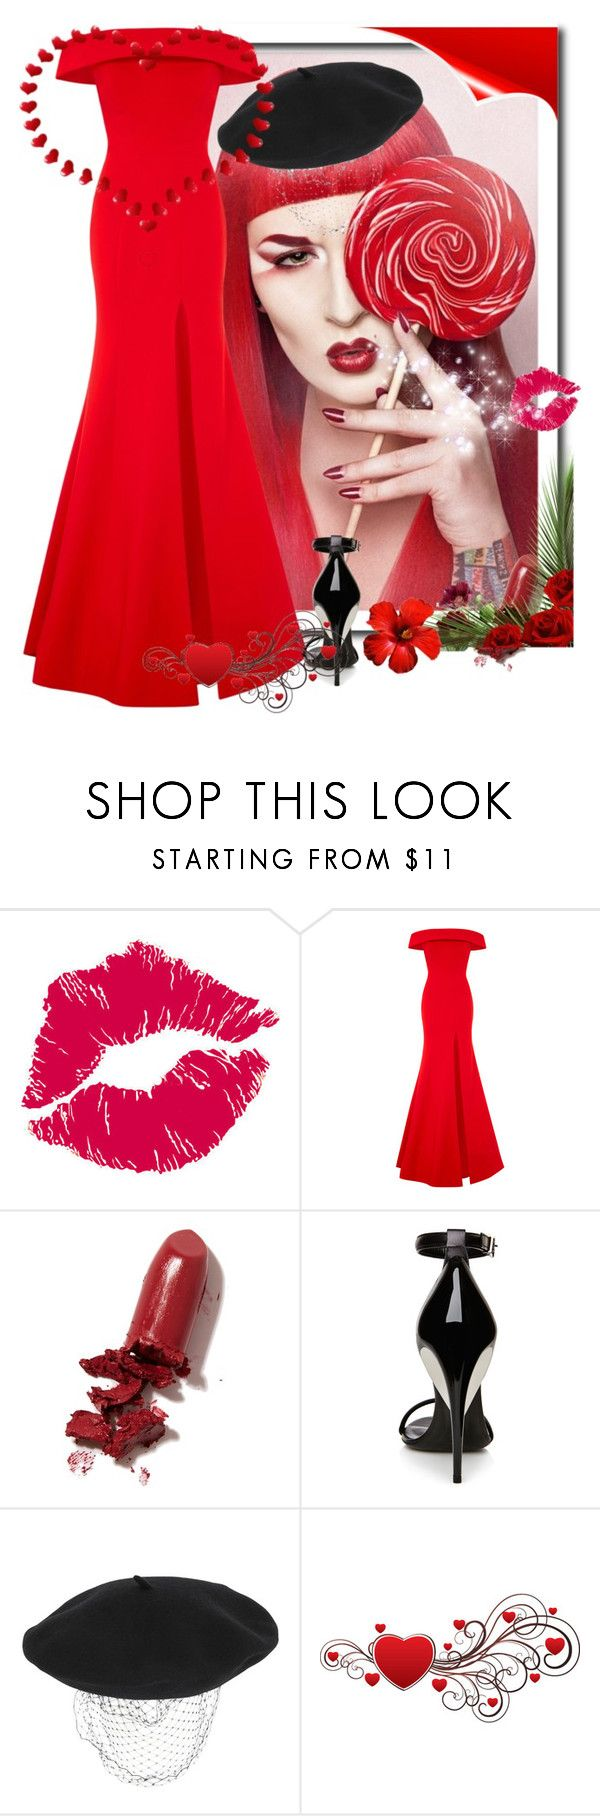 """""""Serious Red"""" by jaymagic ❤ liked on Polyvore featuring BRIT*, Rachel Gilbert, LAQA & Co., La Perla and Silver Spoon Attire"""